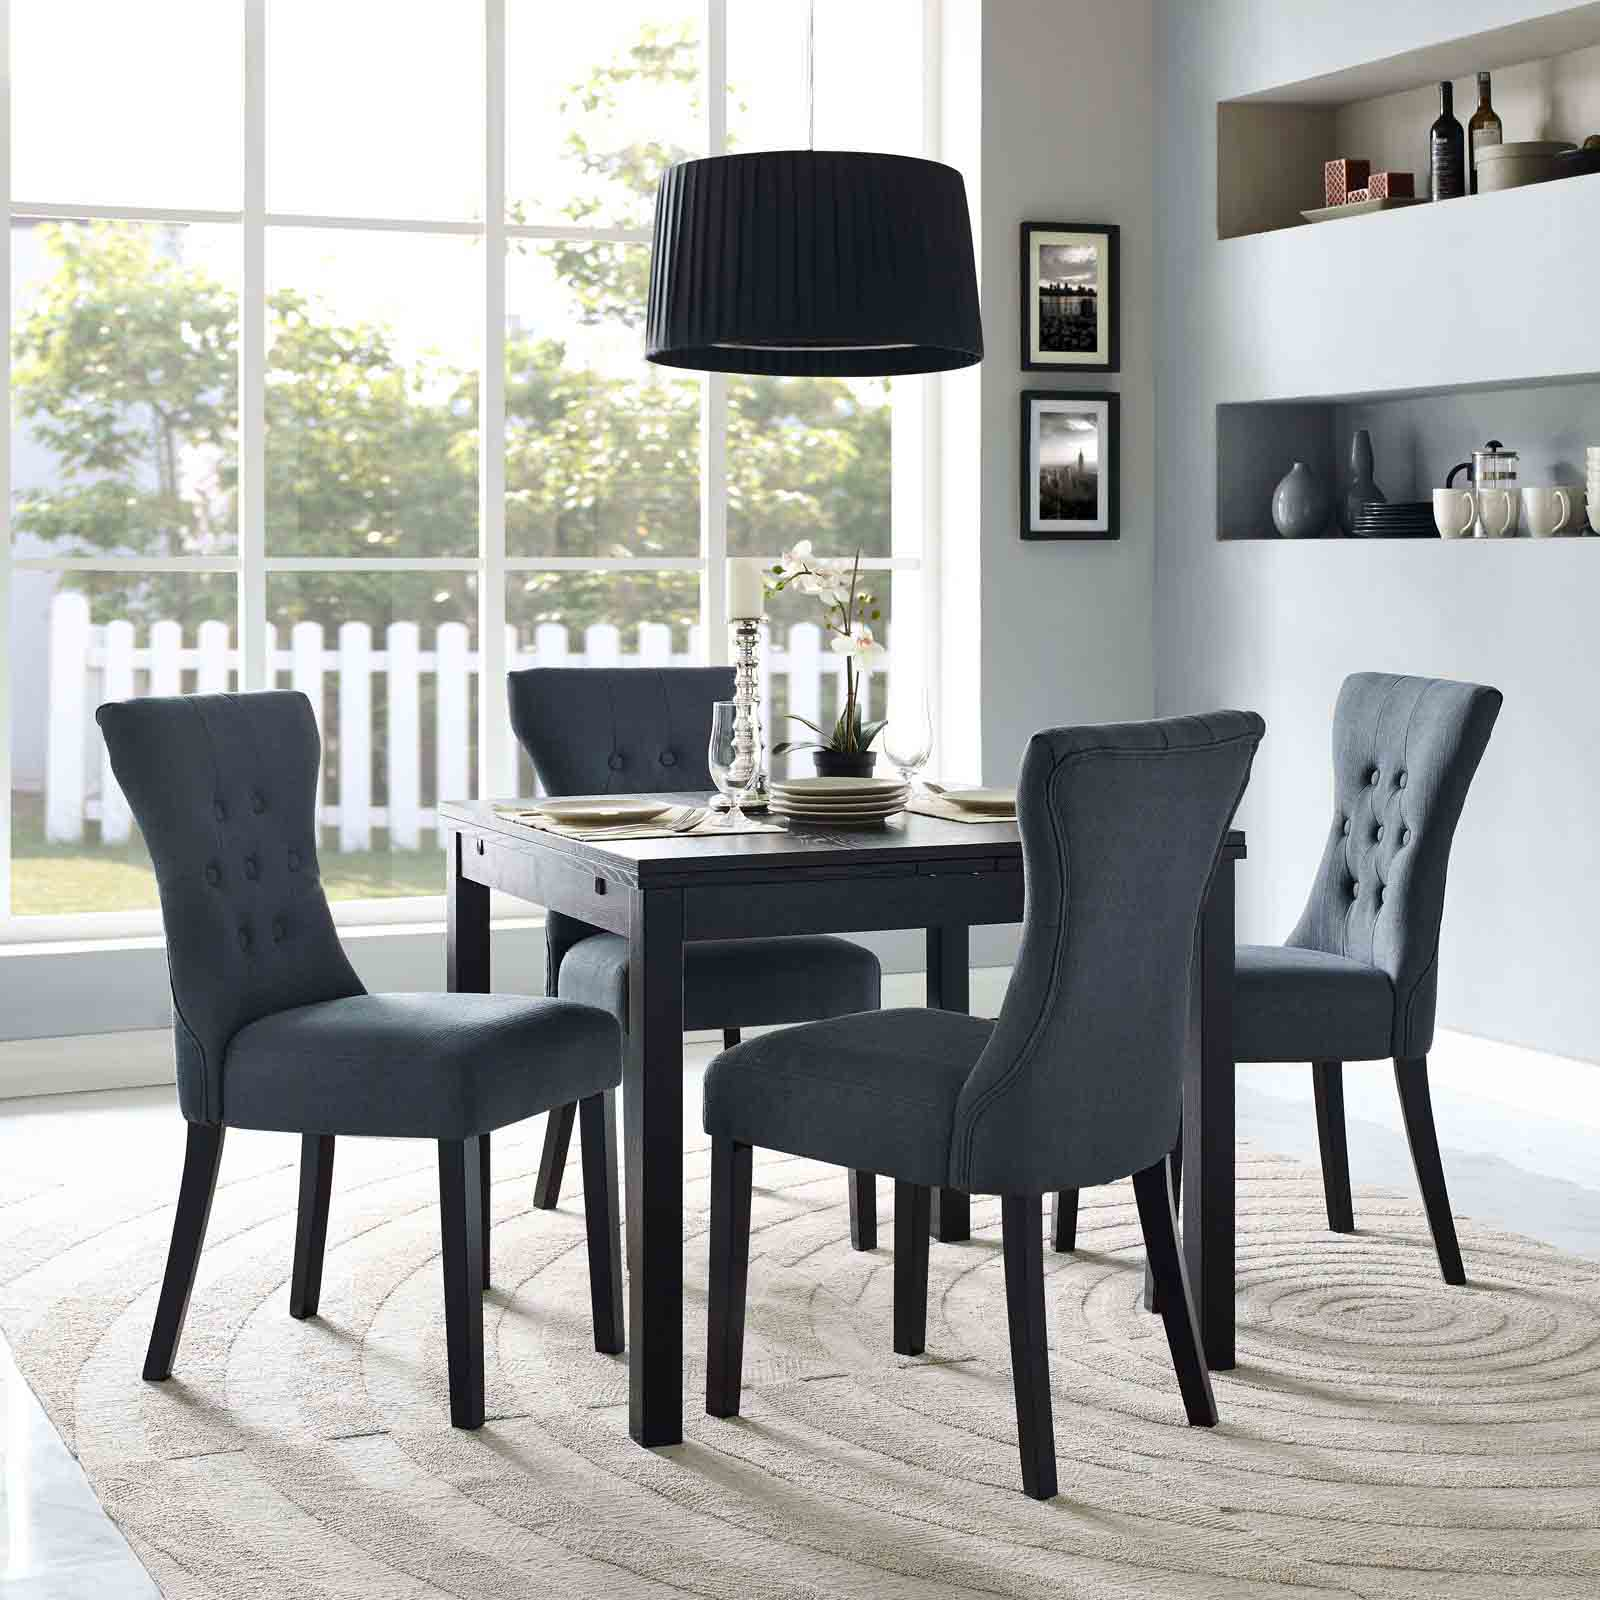 Modterior :: Dining Room :: Dining Chairs :: Silhouette ...